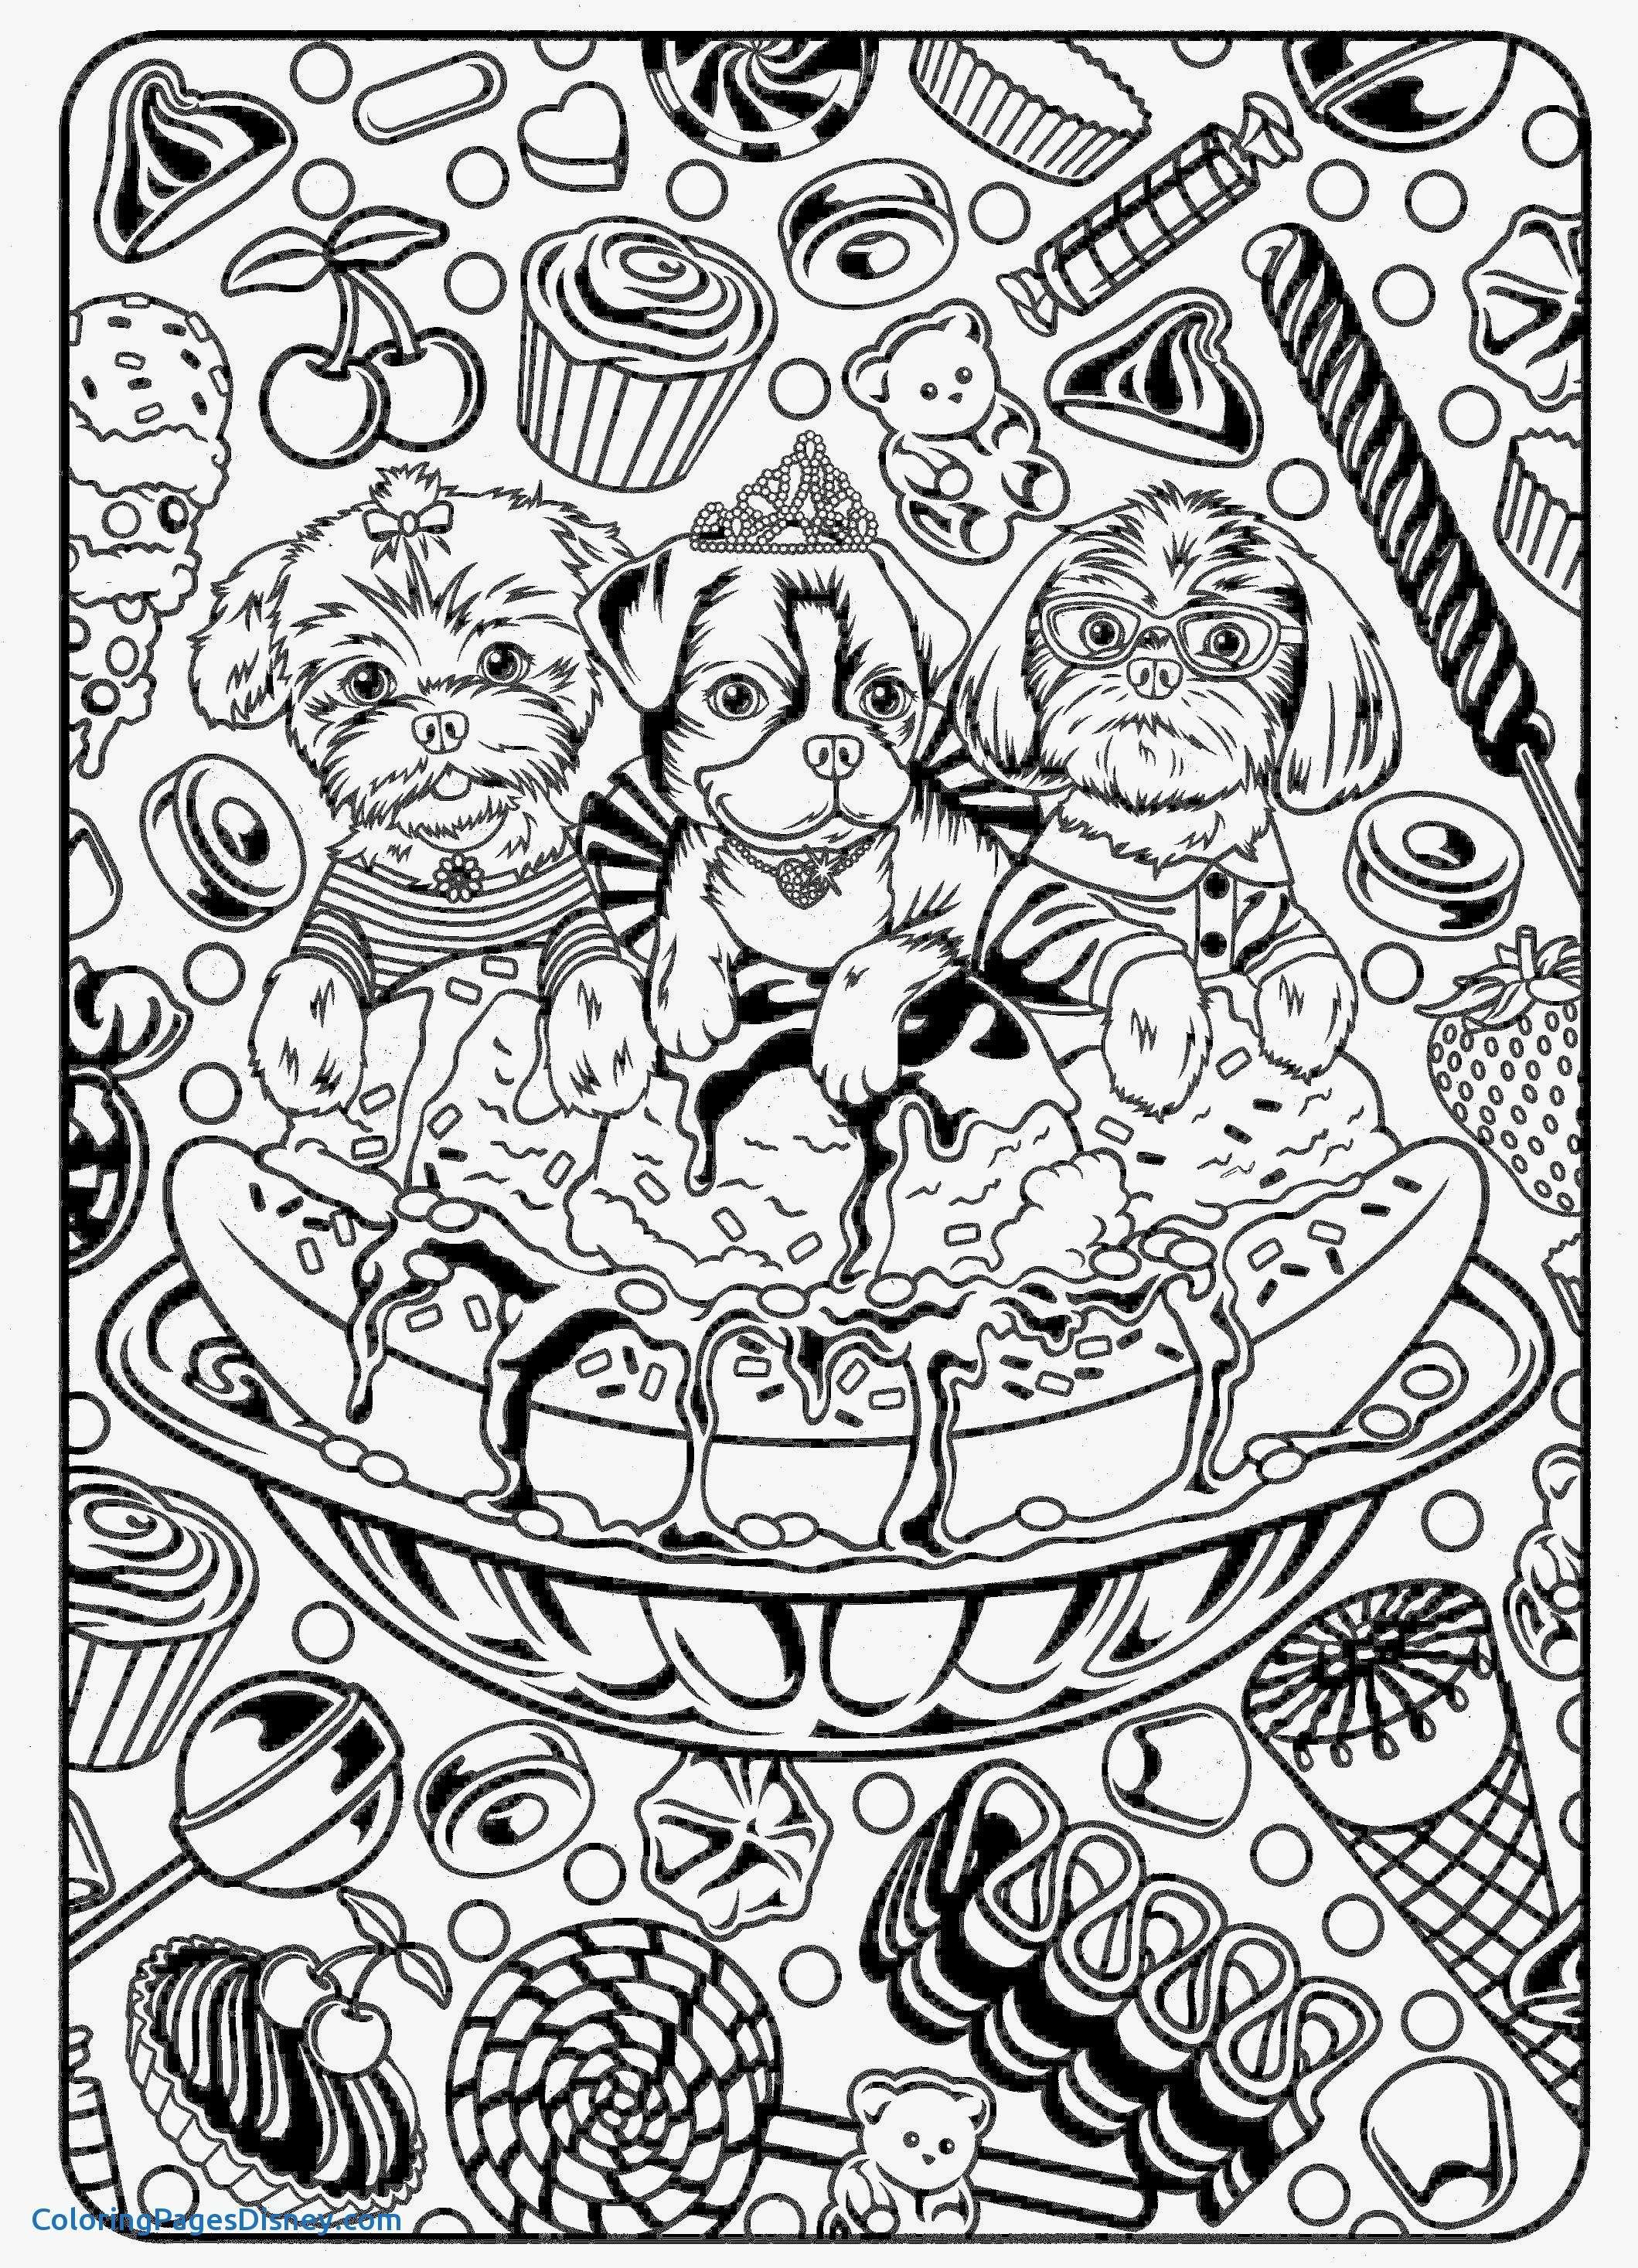 Christmas Kangaroo Coloring Page With Fall Tree Sheets Unique Sheet Design